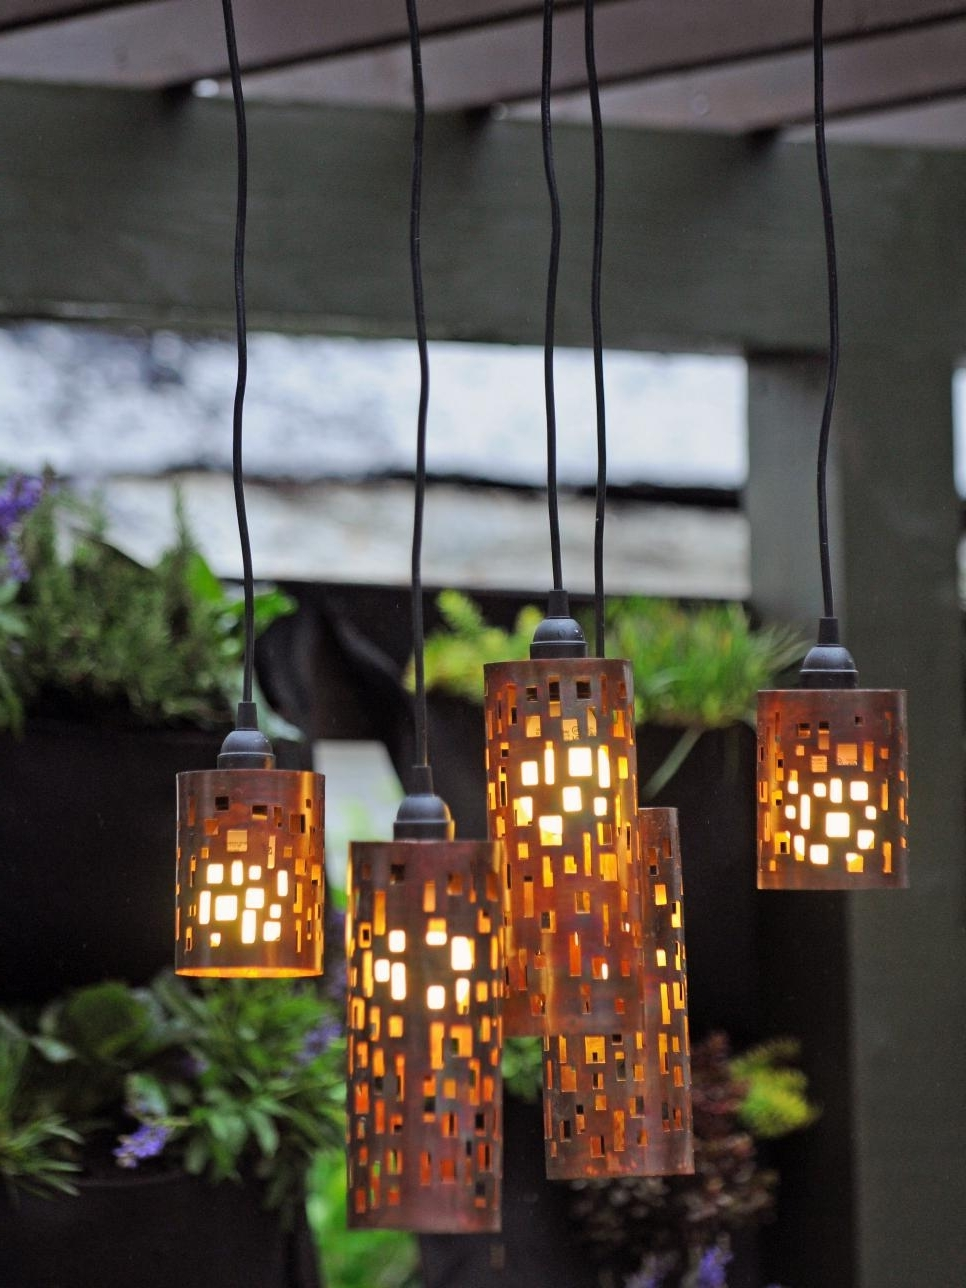 Unique Outdoor Hanging Lights For Preferred Set The Mood With Outdoor Lighting Trends And Pation Hanging Lights (View 16 of 20)